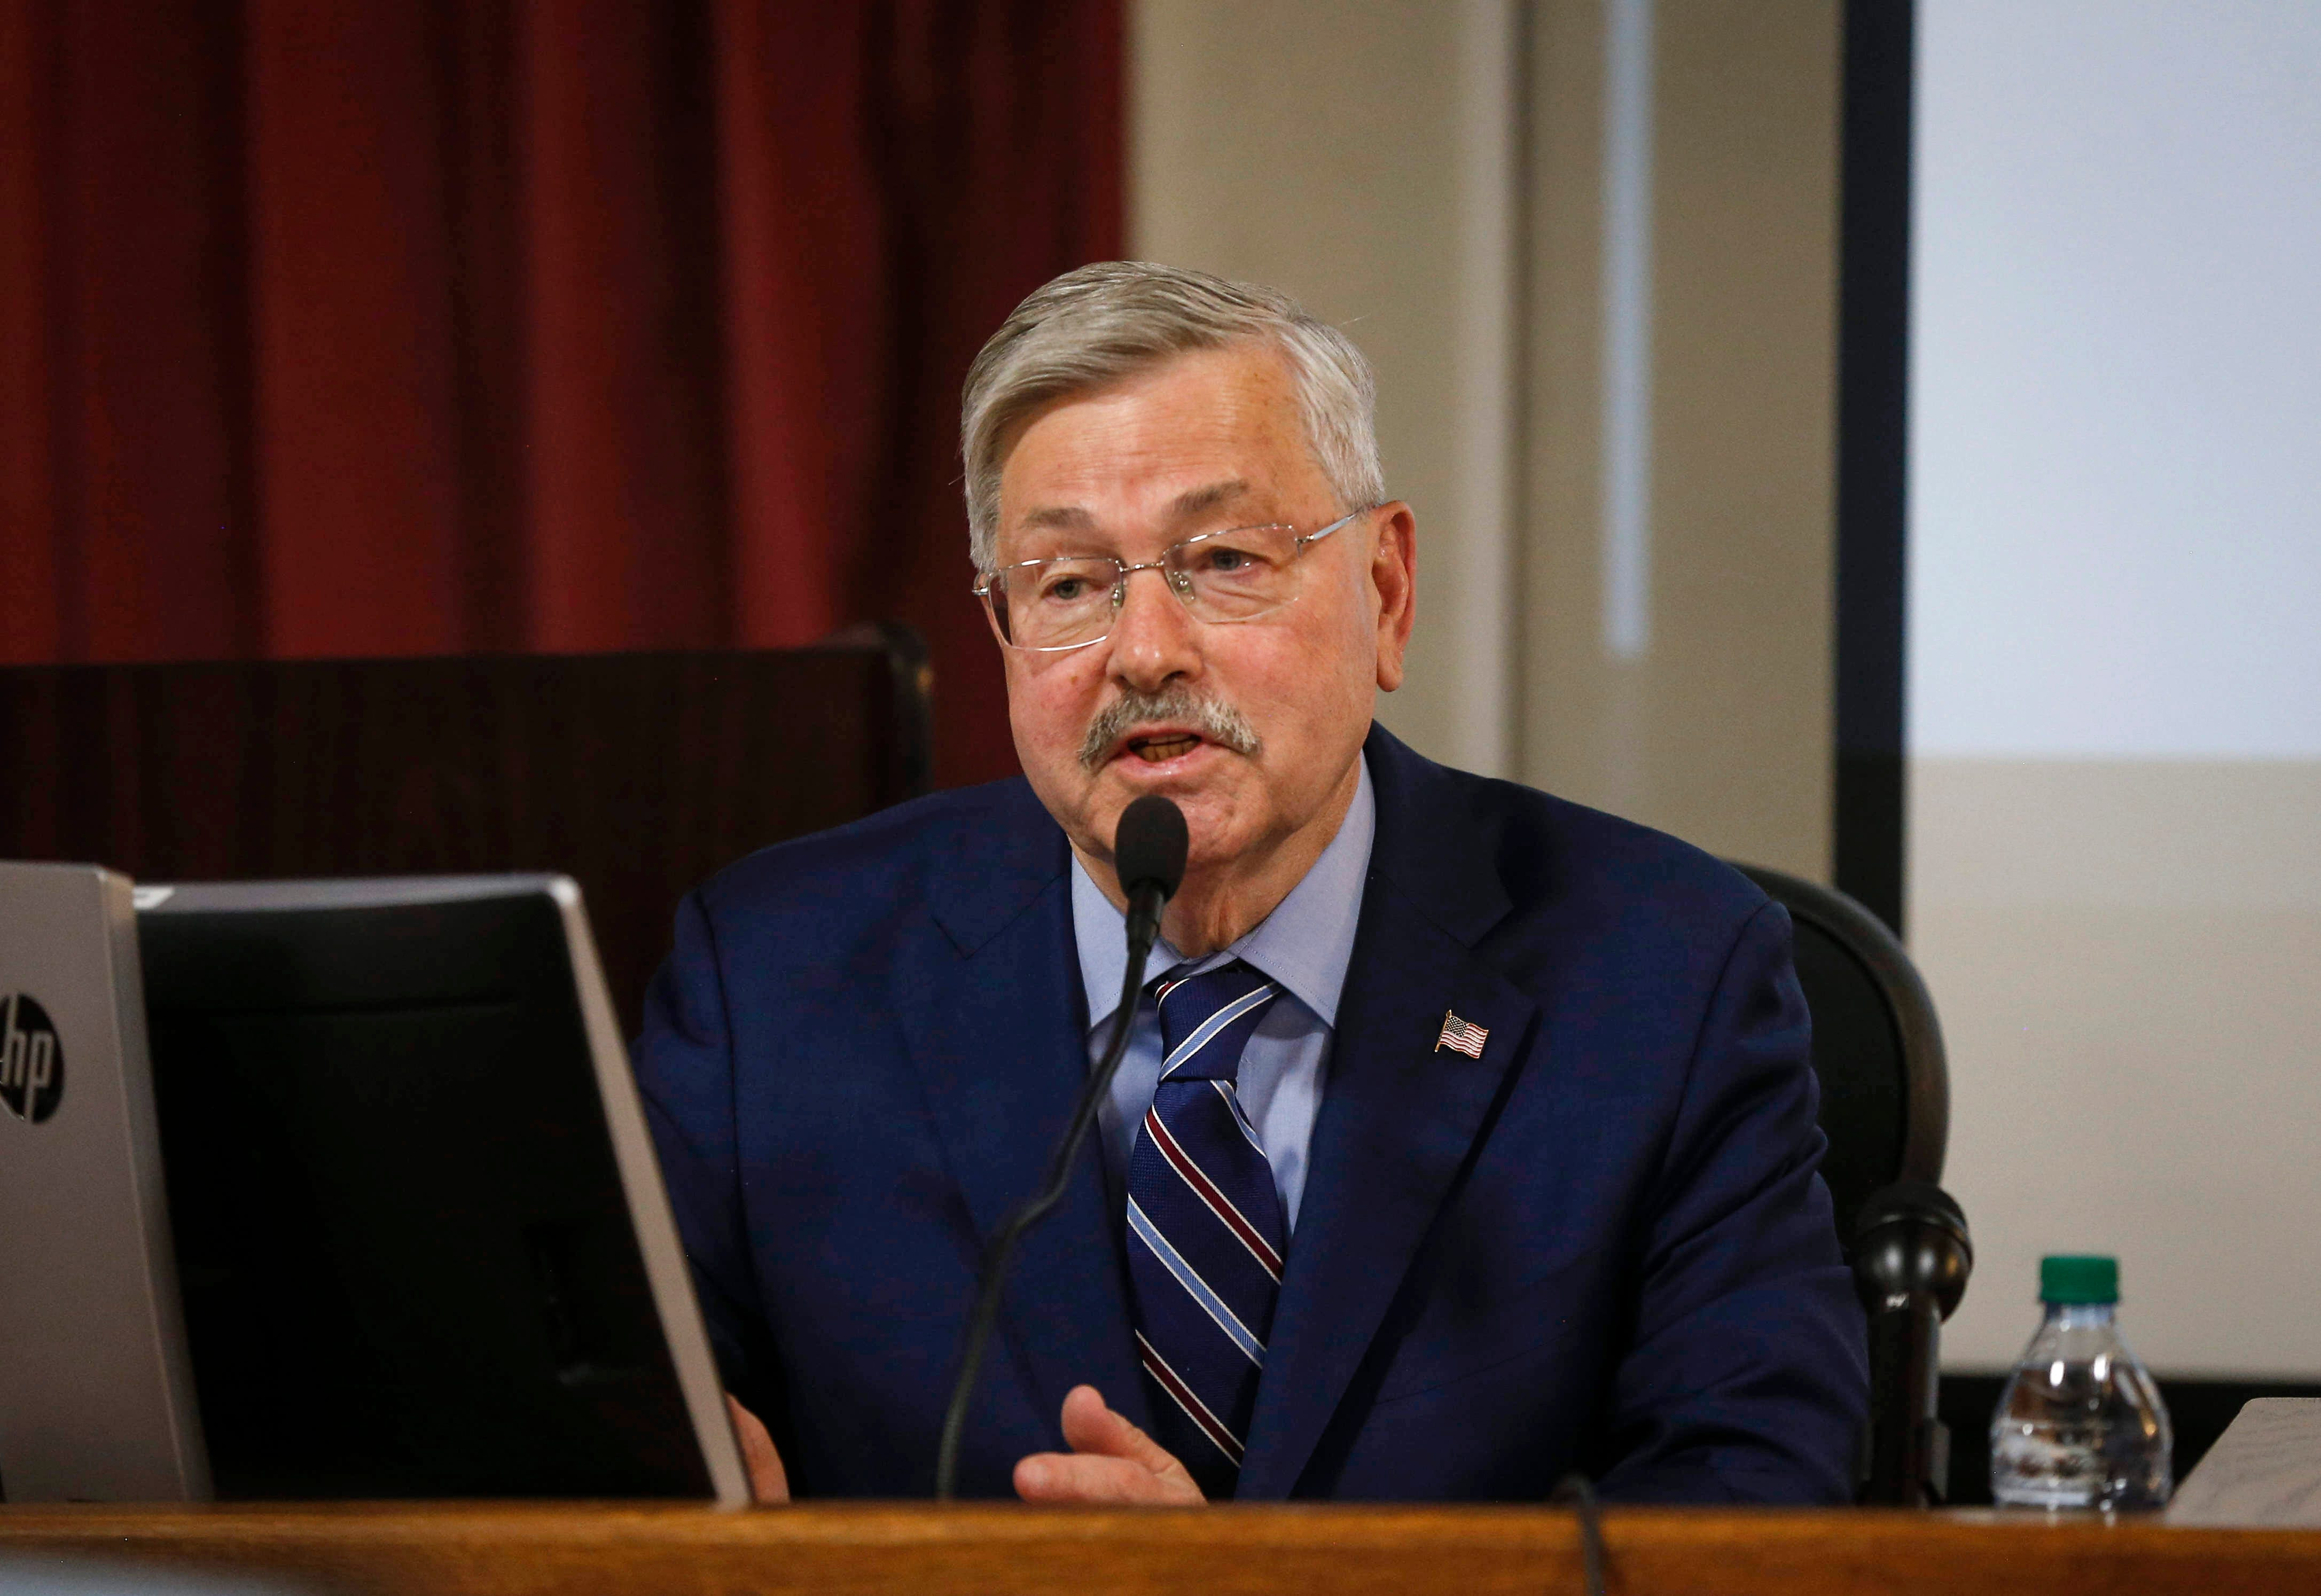 Terry Branstad claims no discrimination in cutting gay official's pay